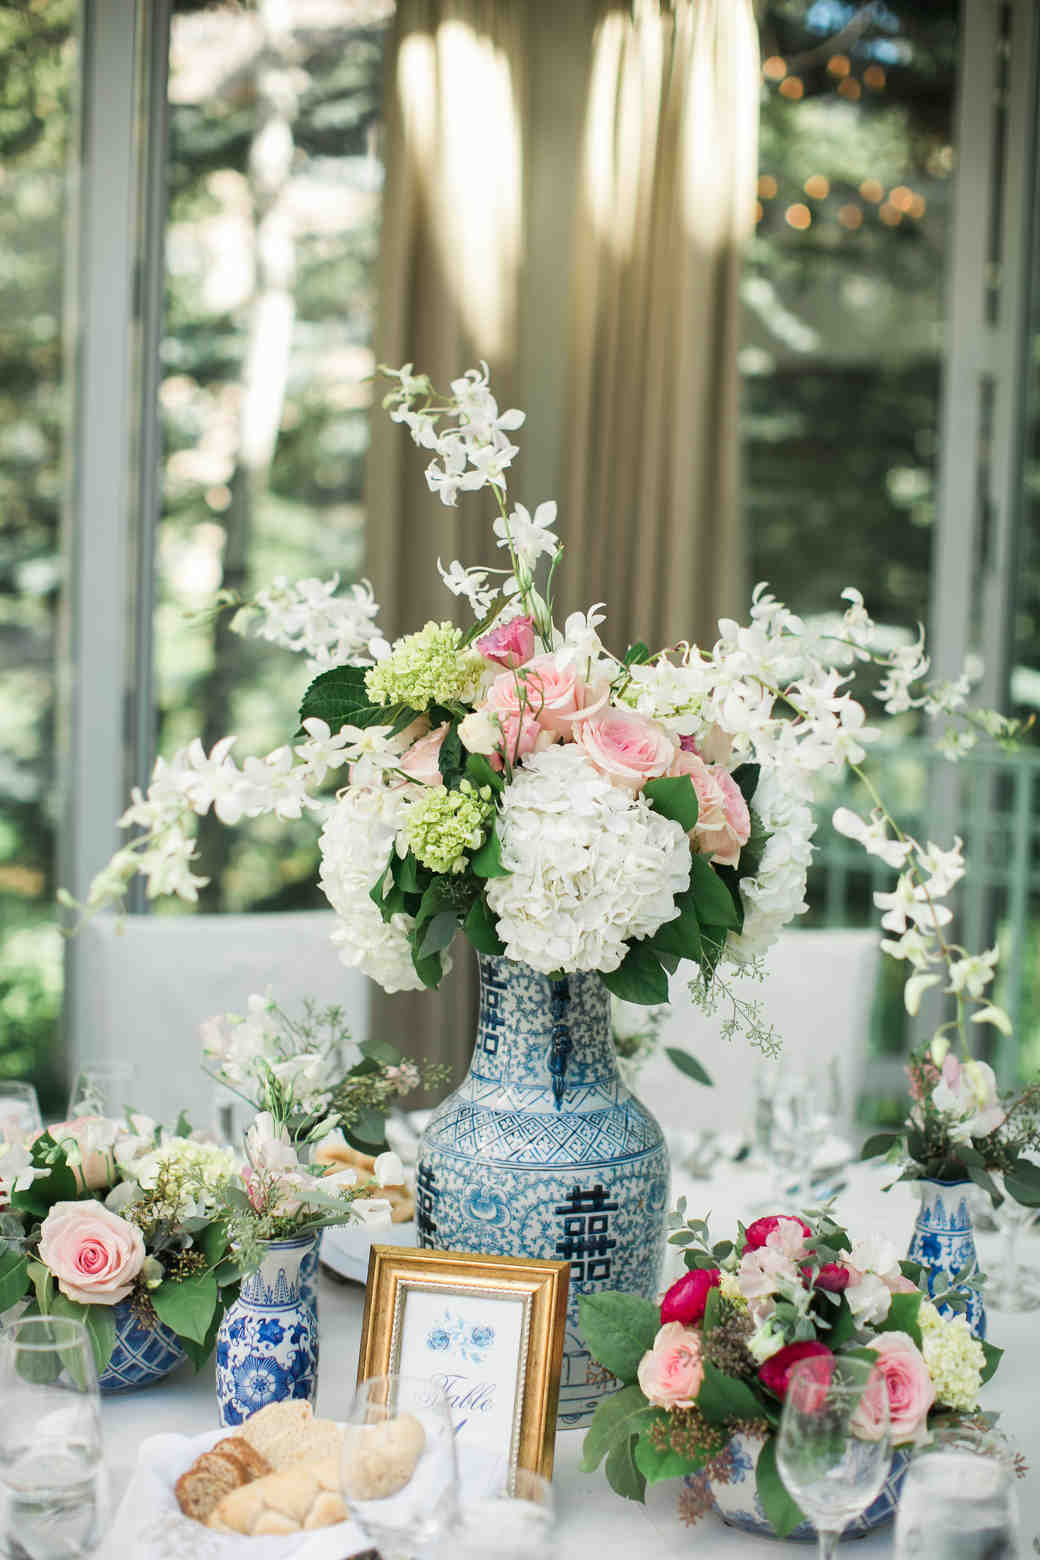 Delicieux Vintage Bridal Shower Decor With Antique Vases And Flowers